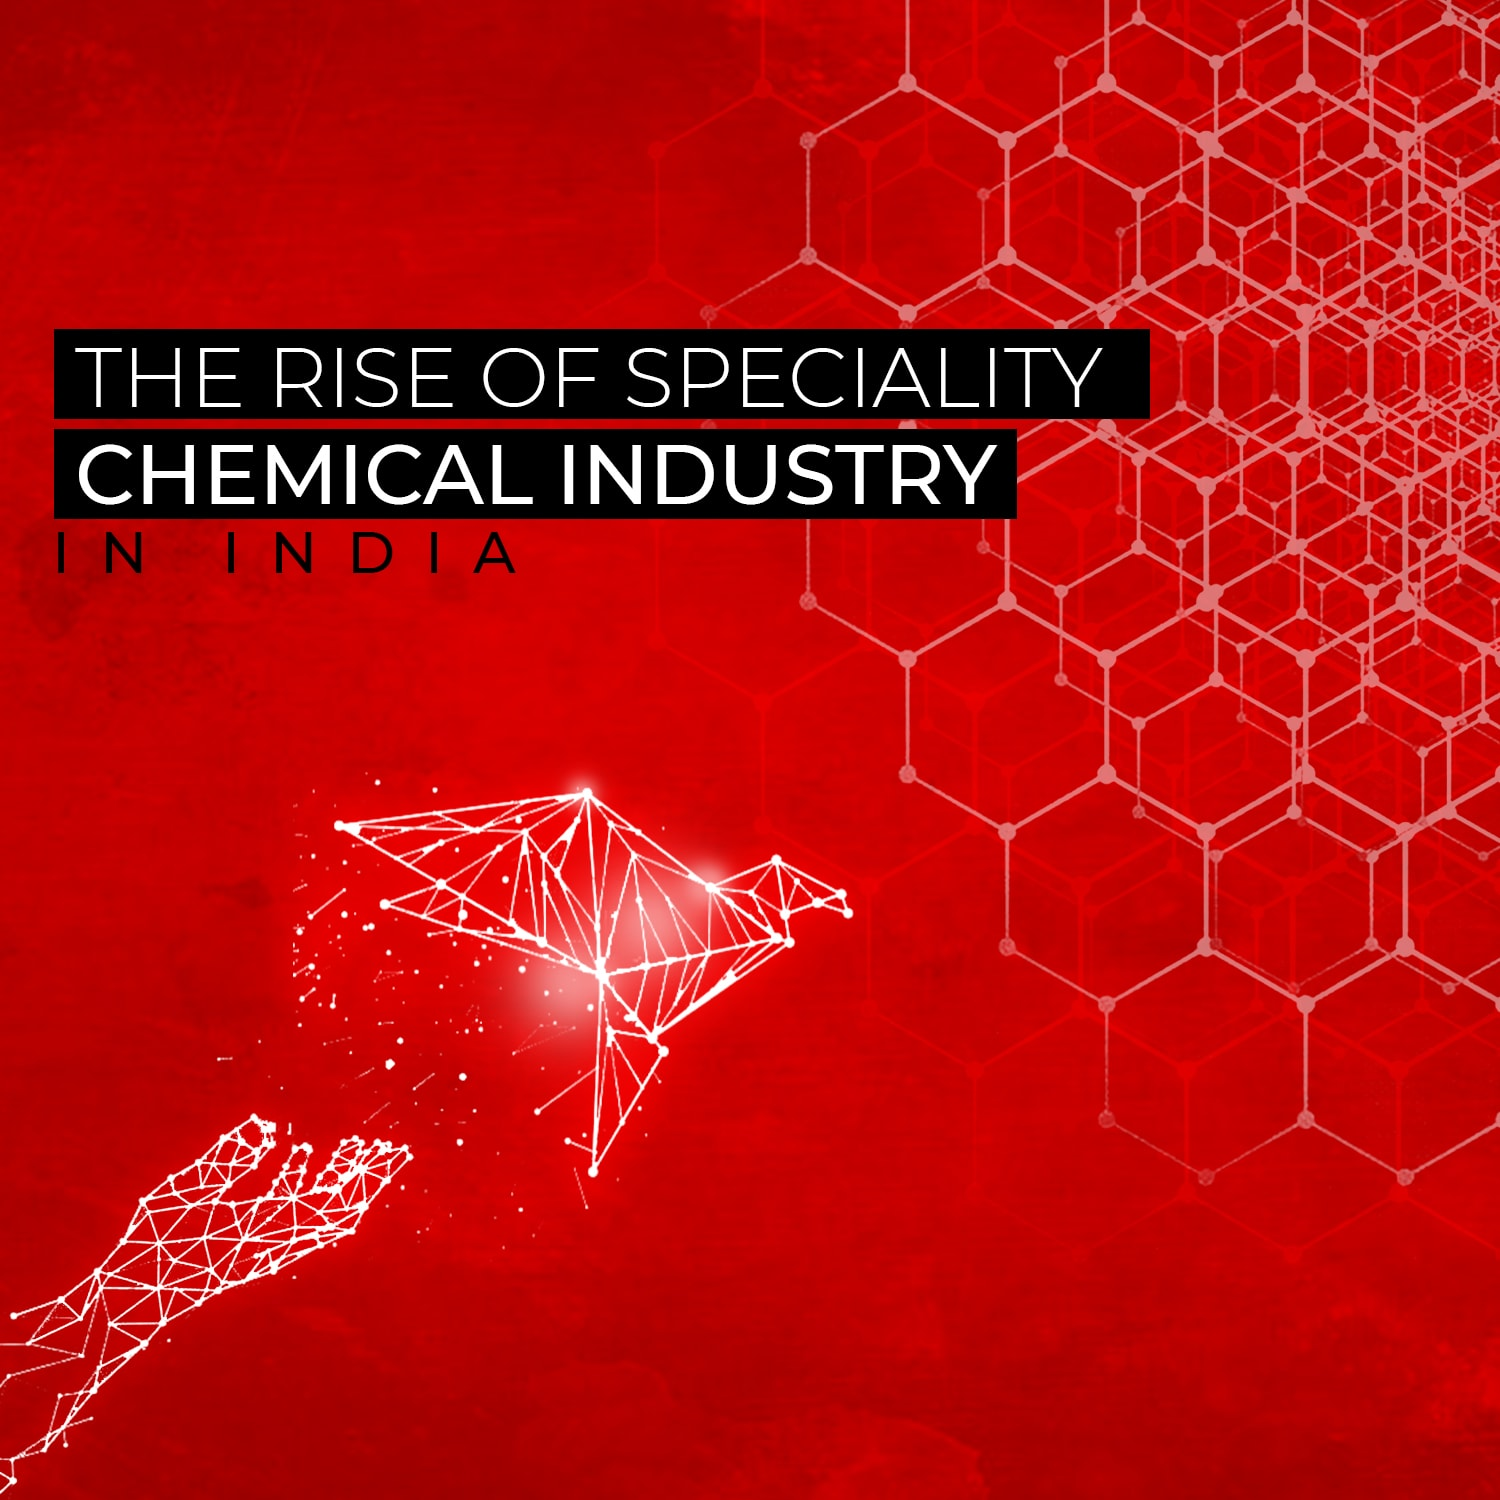 The extraordinary story of the Speciality Chemical Industry told through a series of animated visual infographics